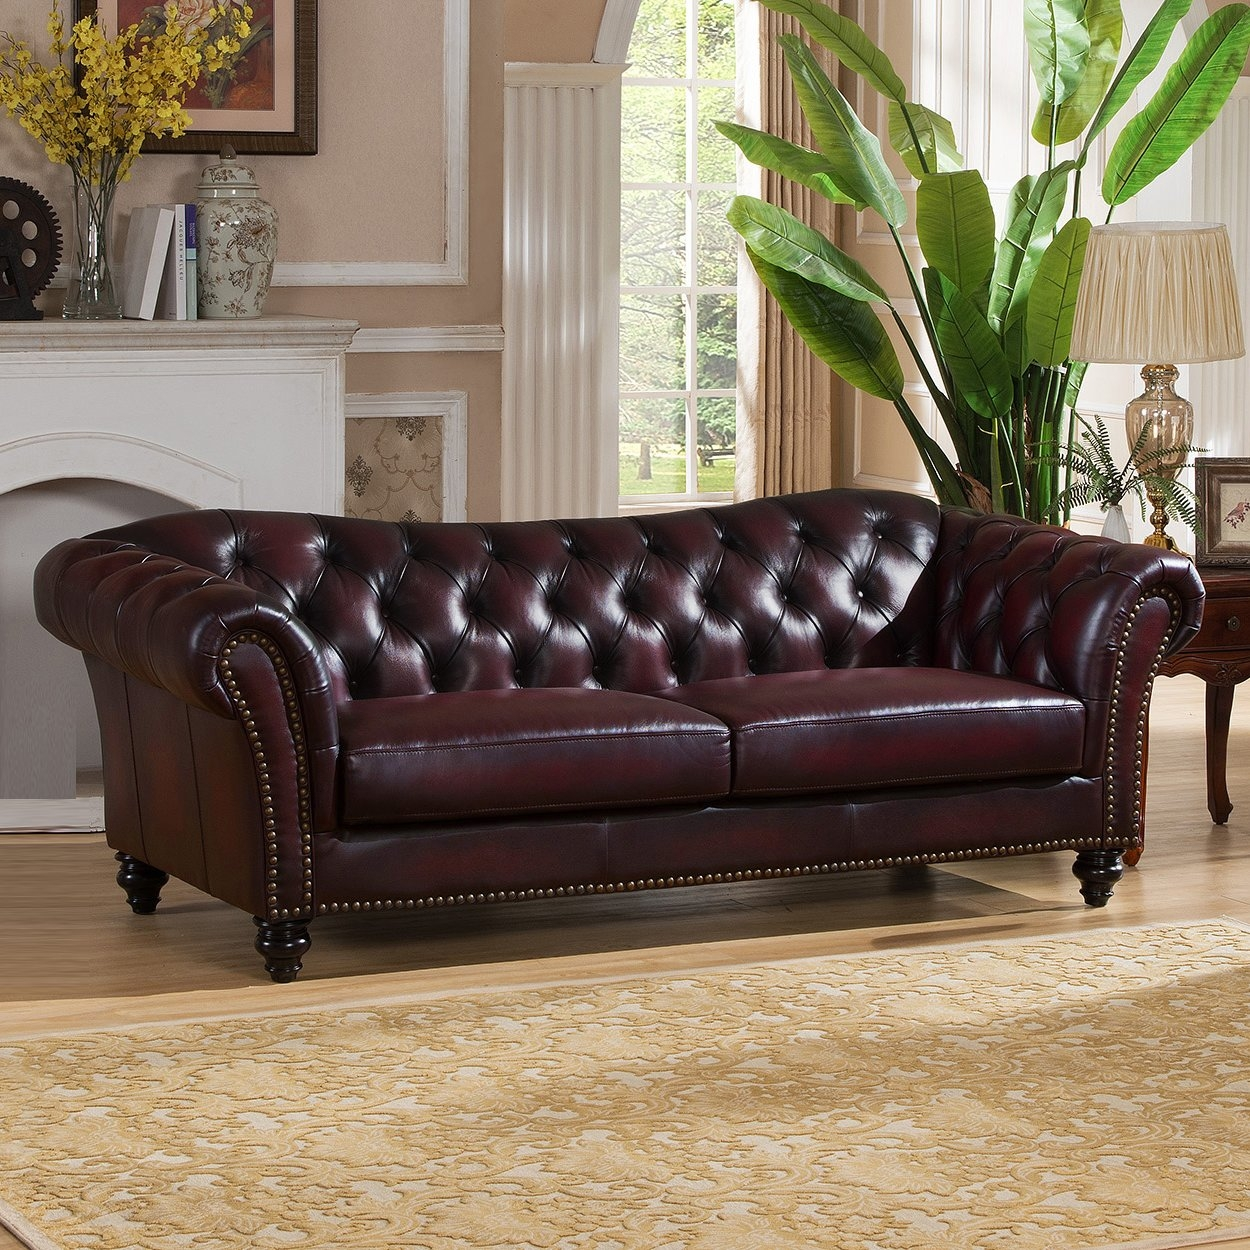 Storage Canterbury Leather Chesterfield Style 3 Seater Sofa Best Regarding Canterbury Leather Sofas (Image 13 of 15)